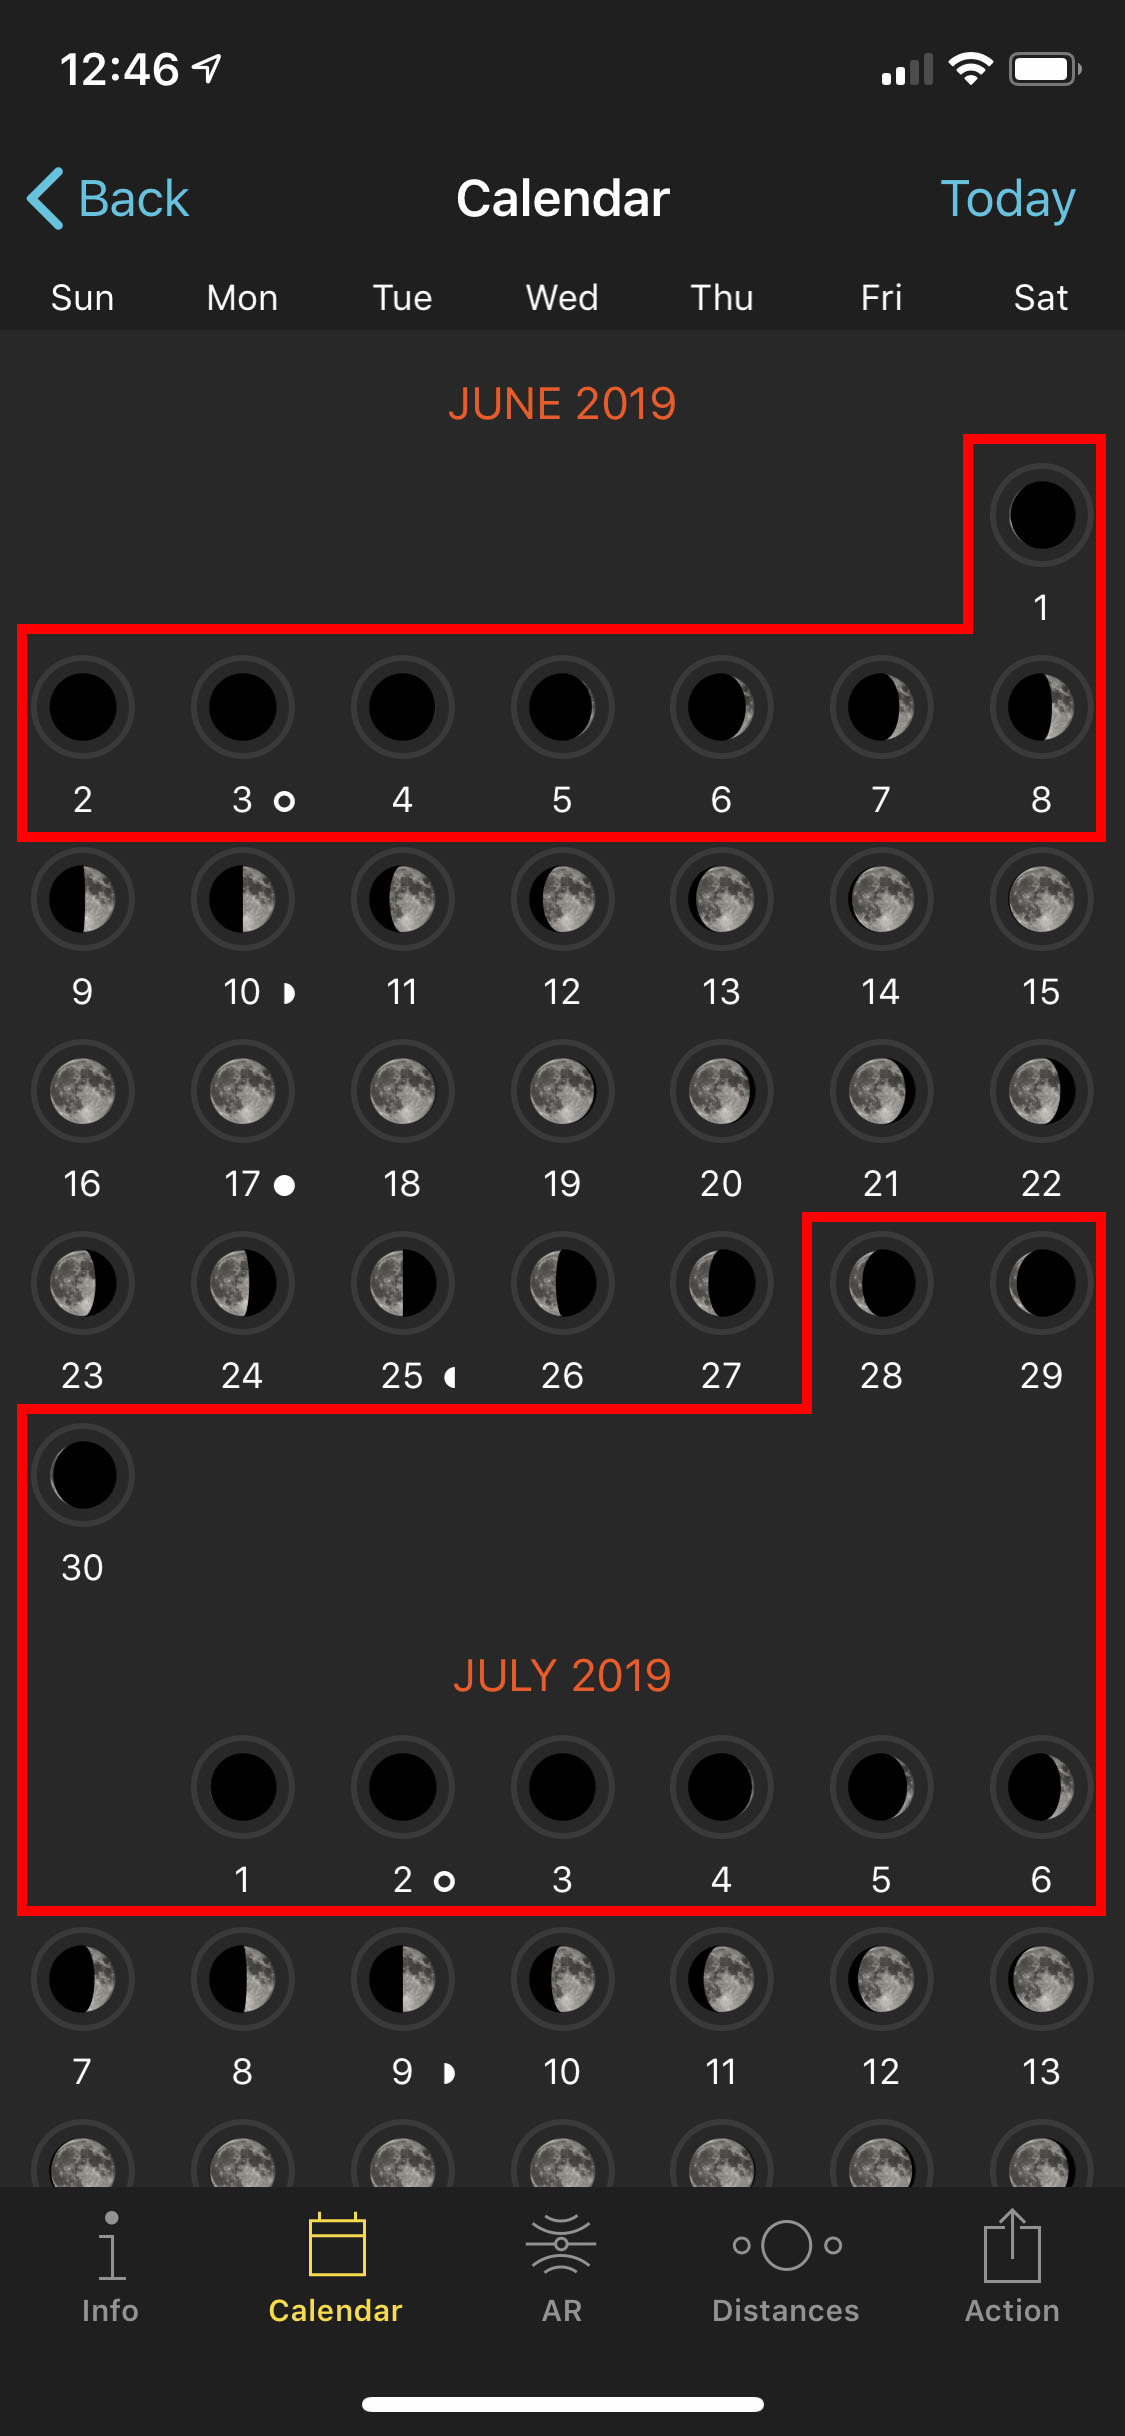 For ideal lack-of-light conditions, consider shooting during the few days before and after new moon.